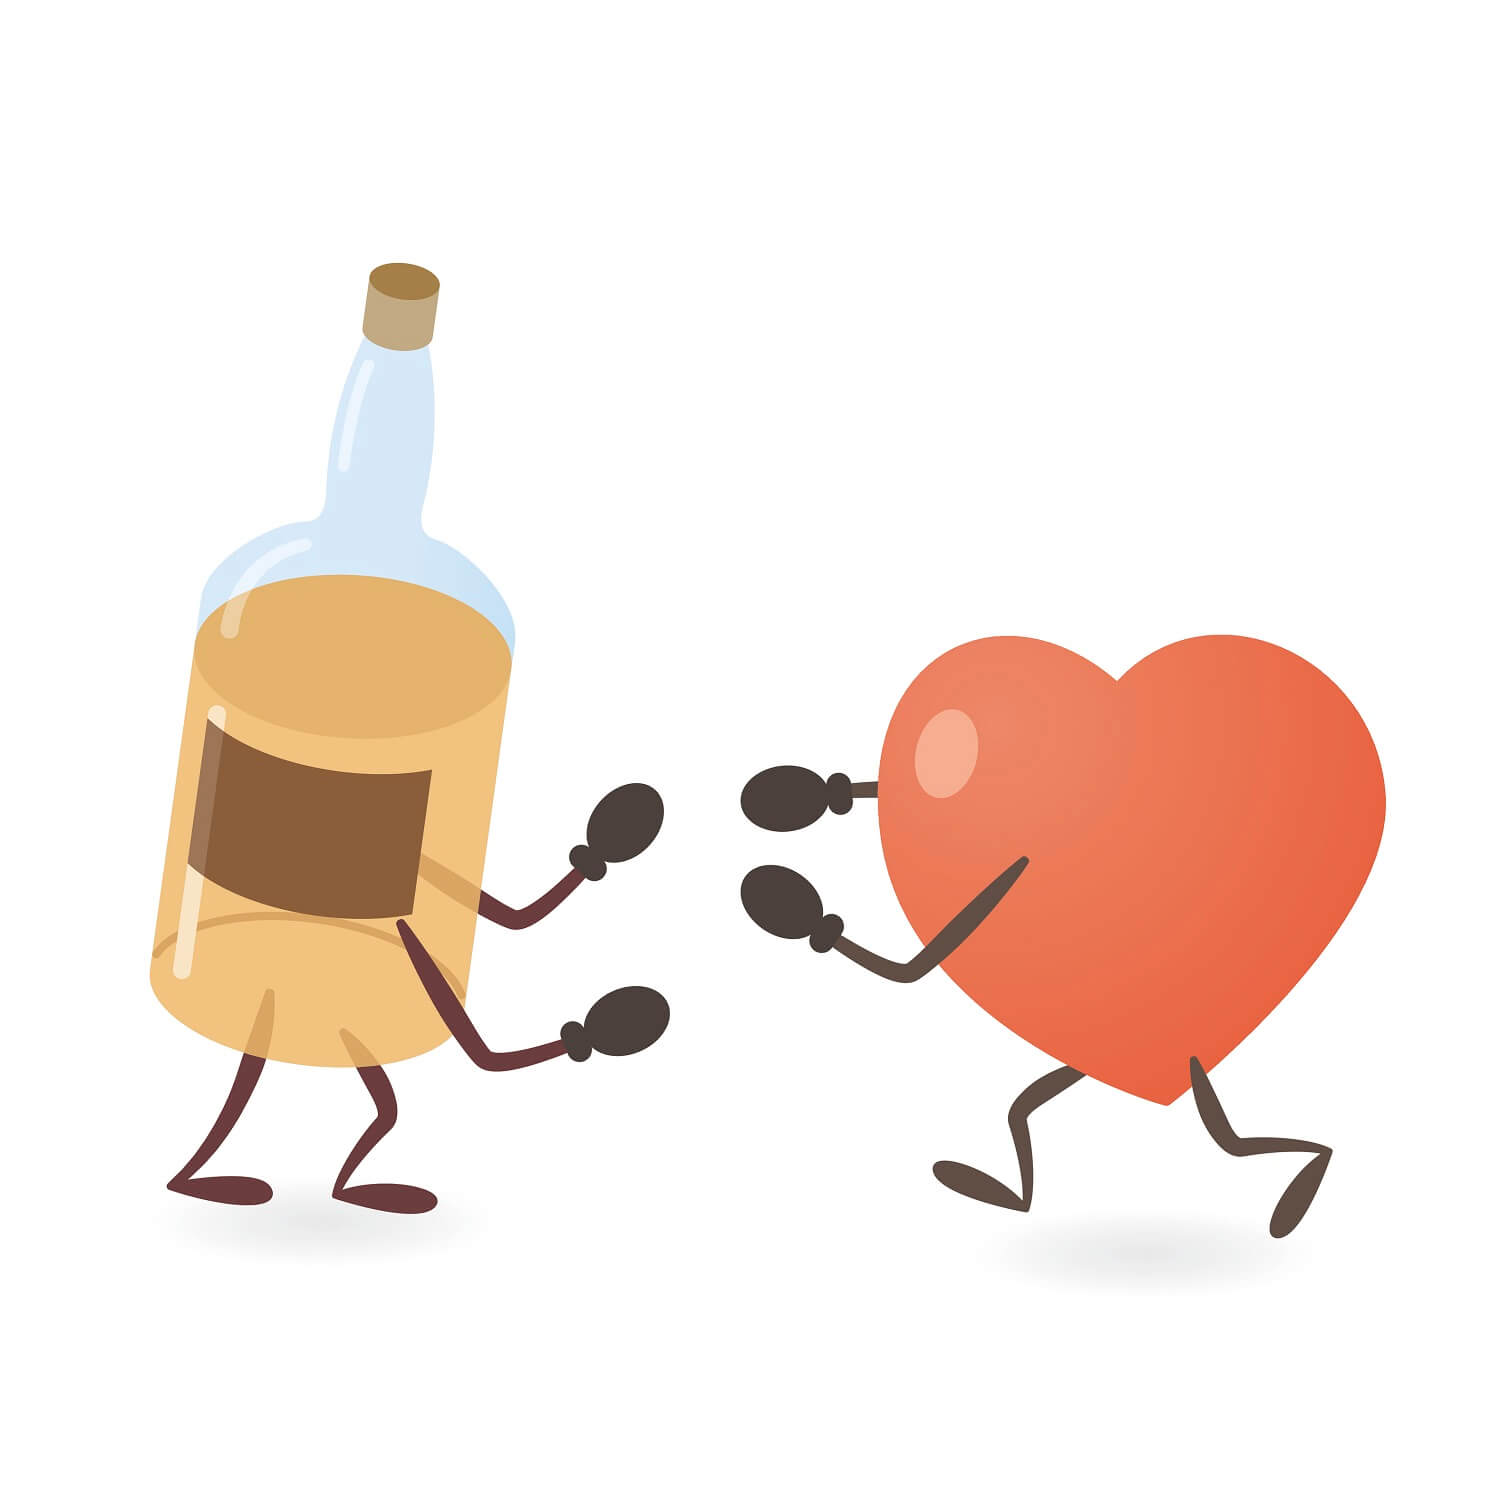 Alcohol clipart alcohol intake. Use affects levels of